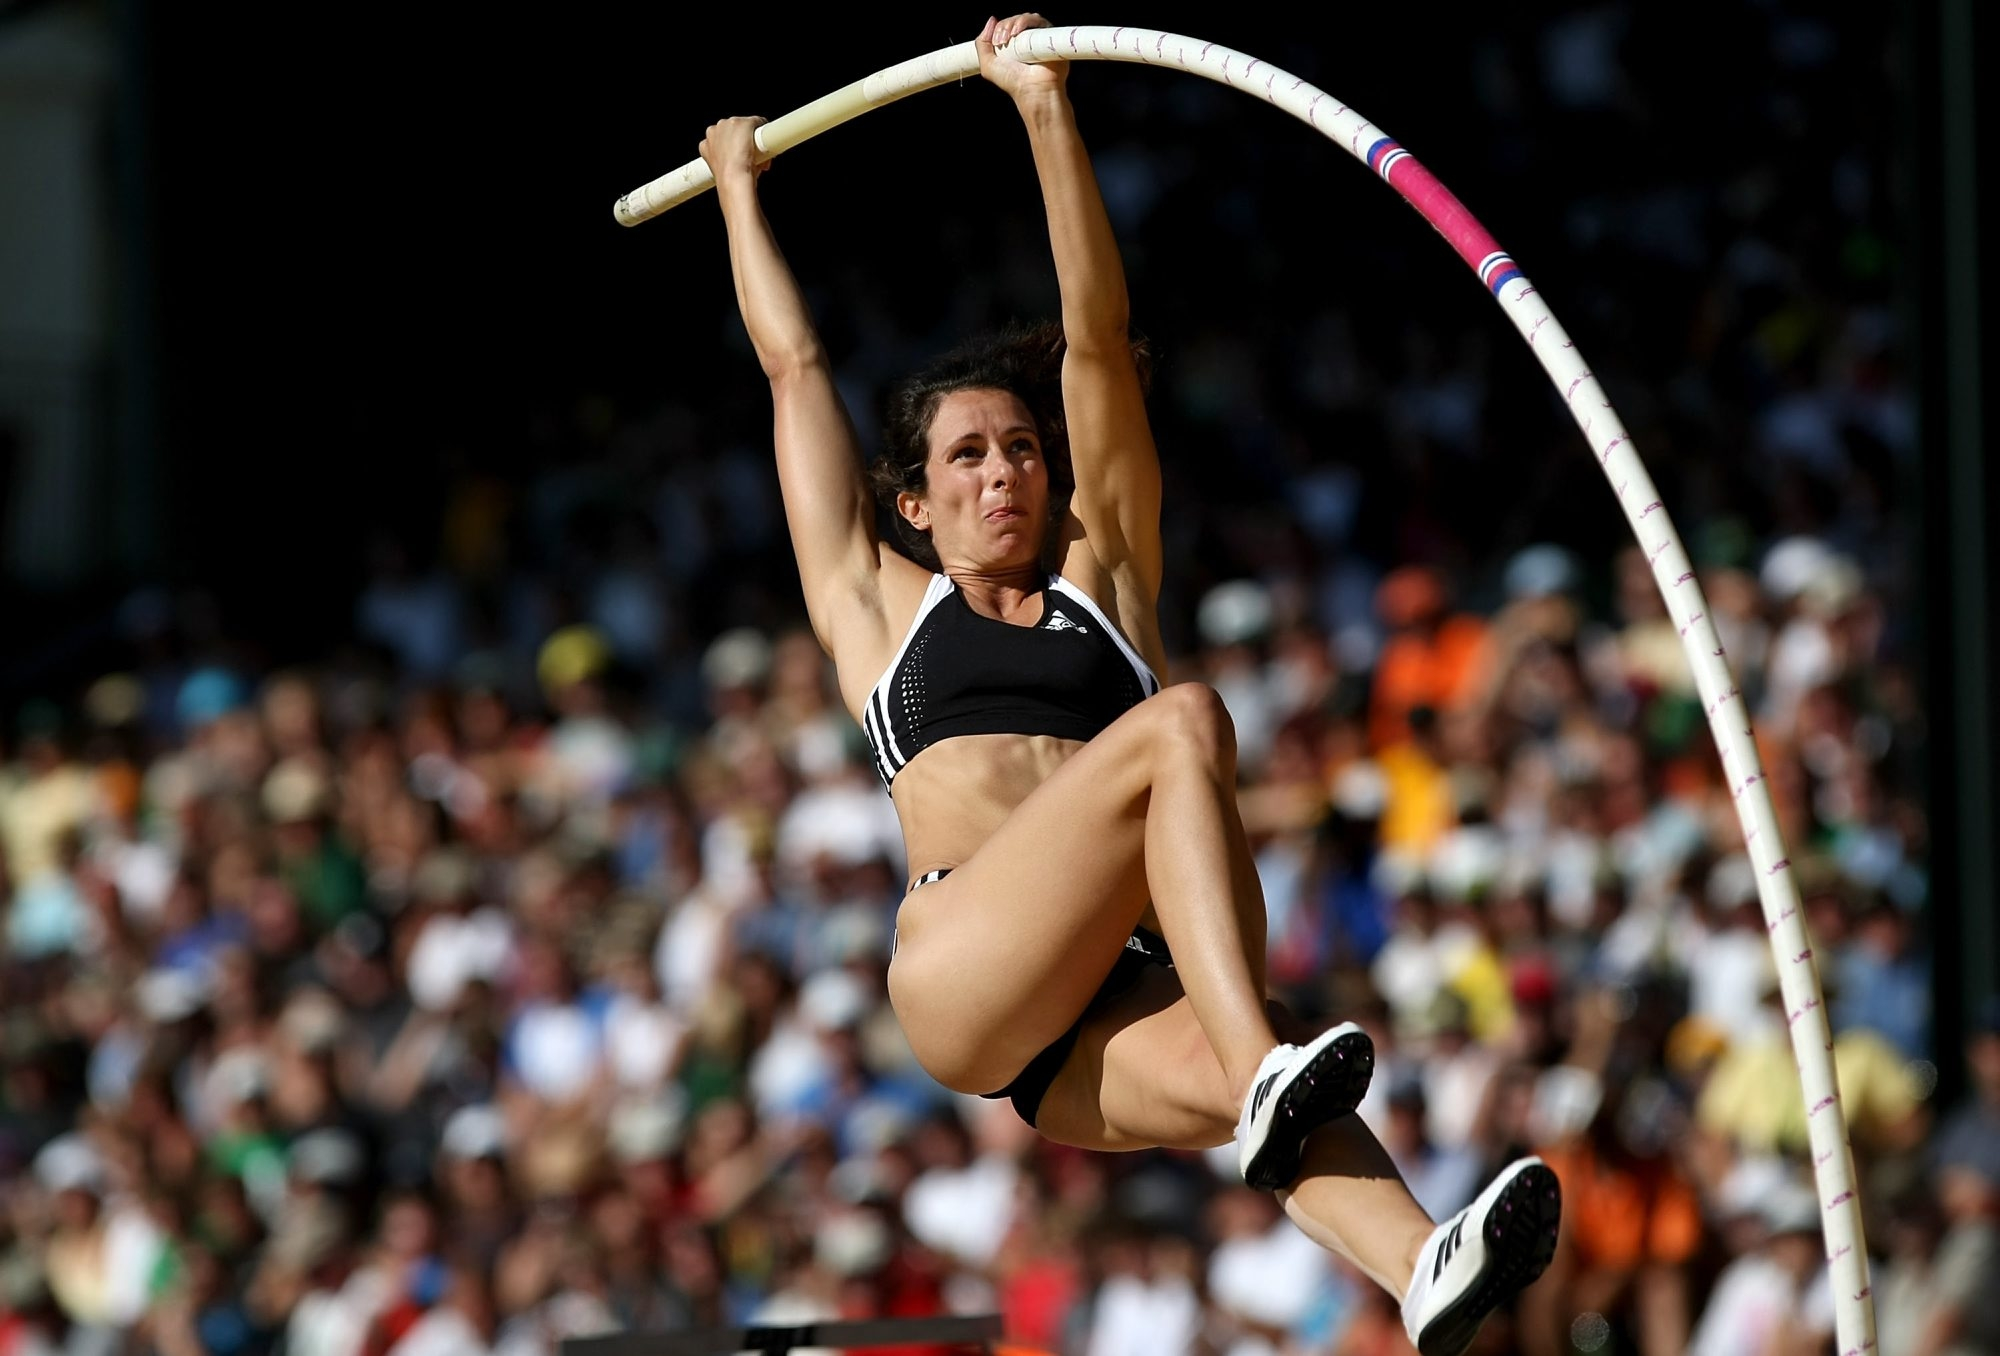 Fredonia native Jenn Suhr has the most national titles of any active U.S. track and field athlete.